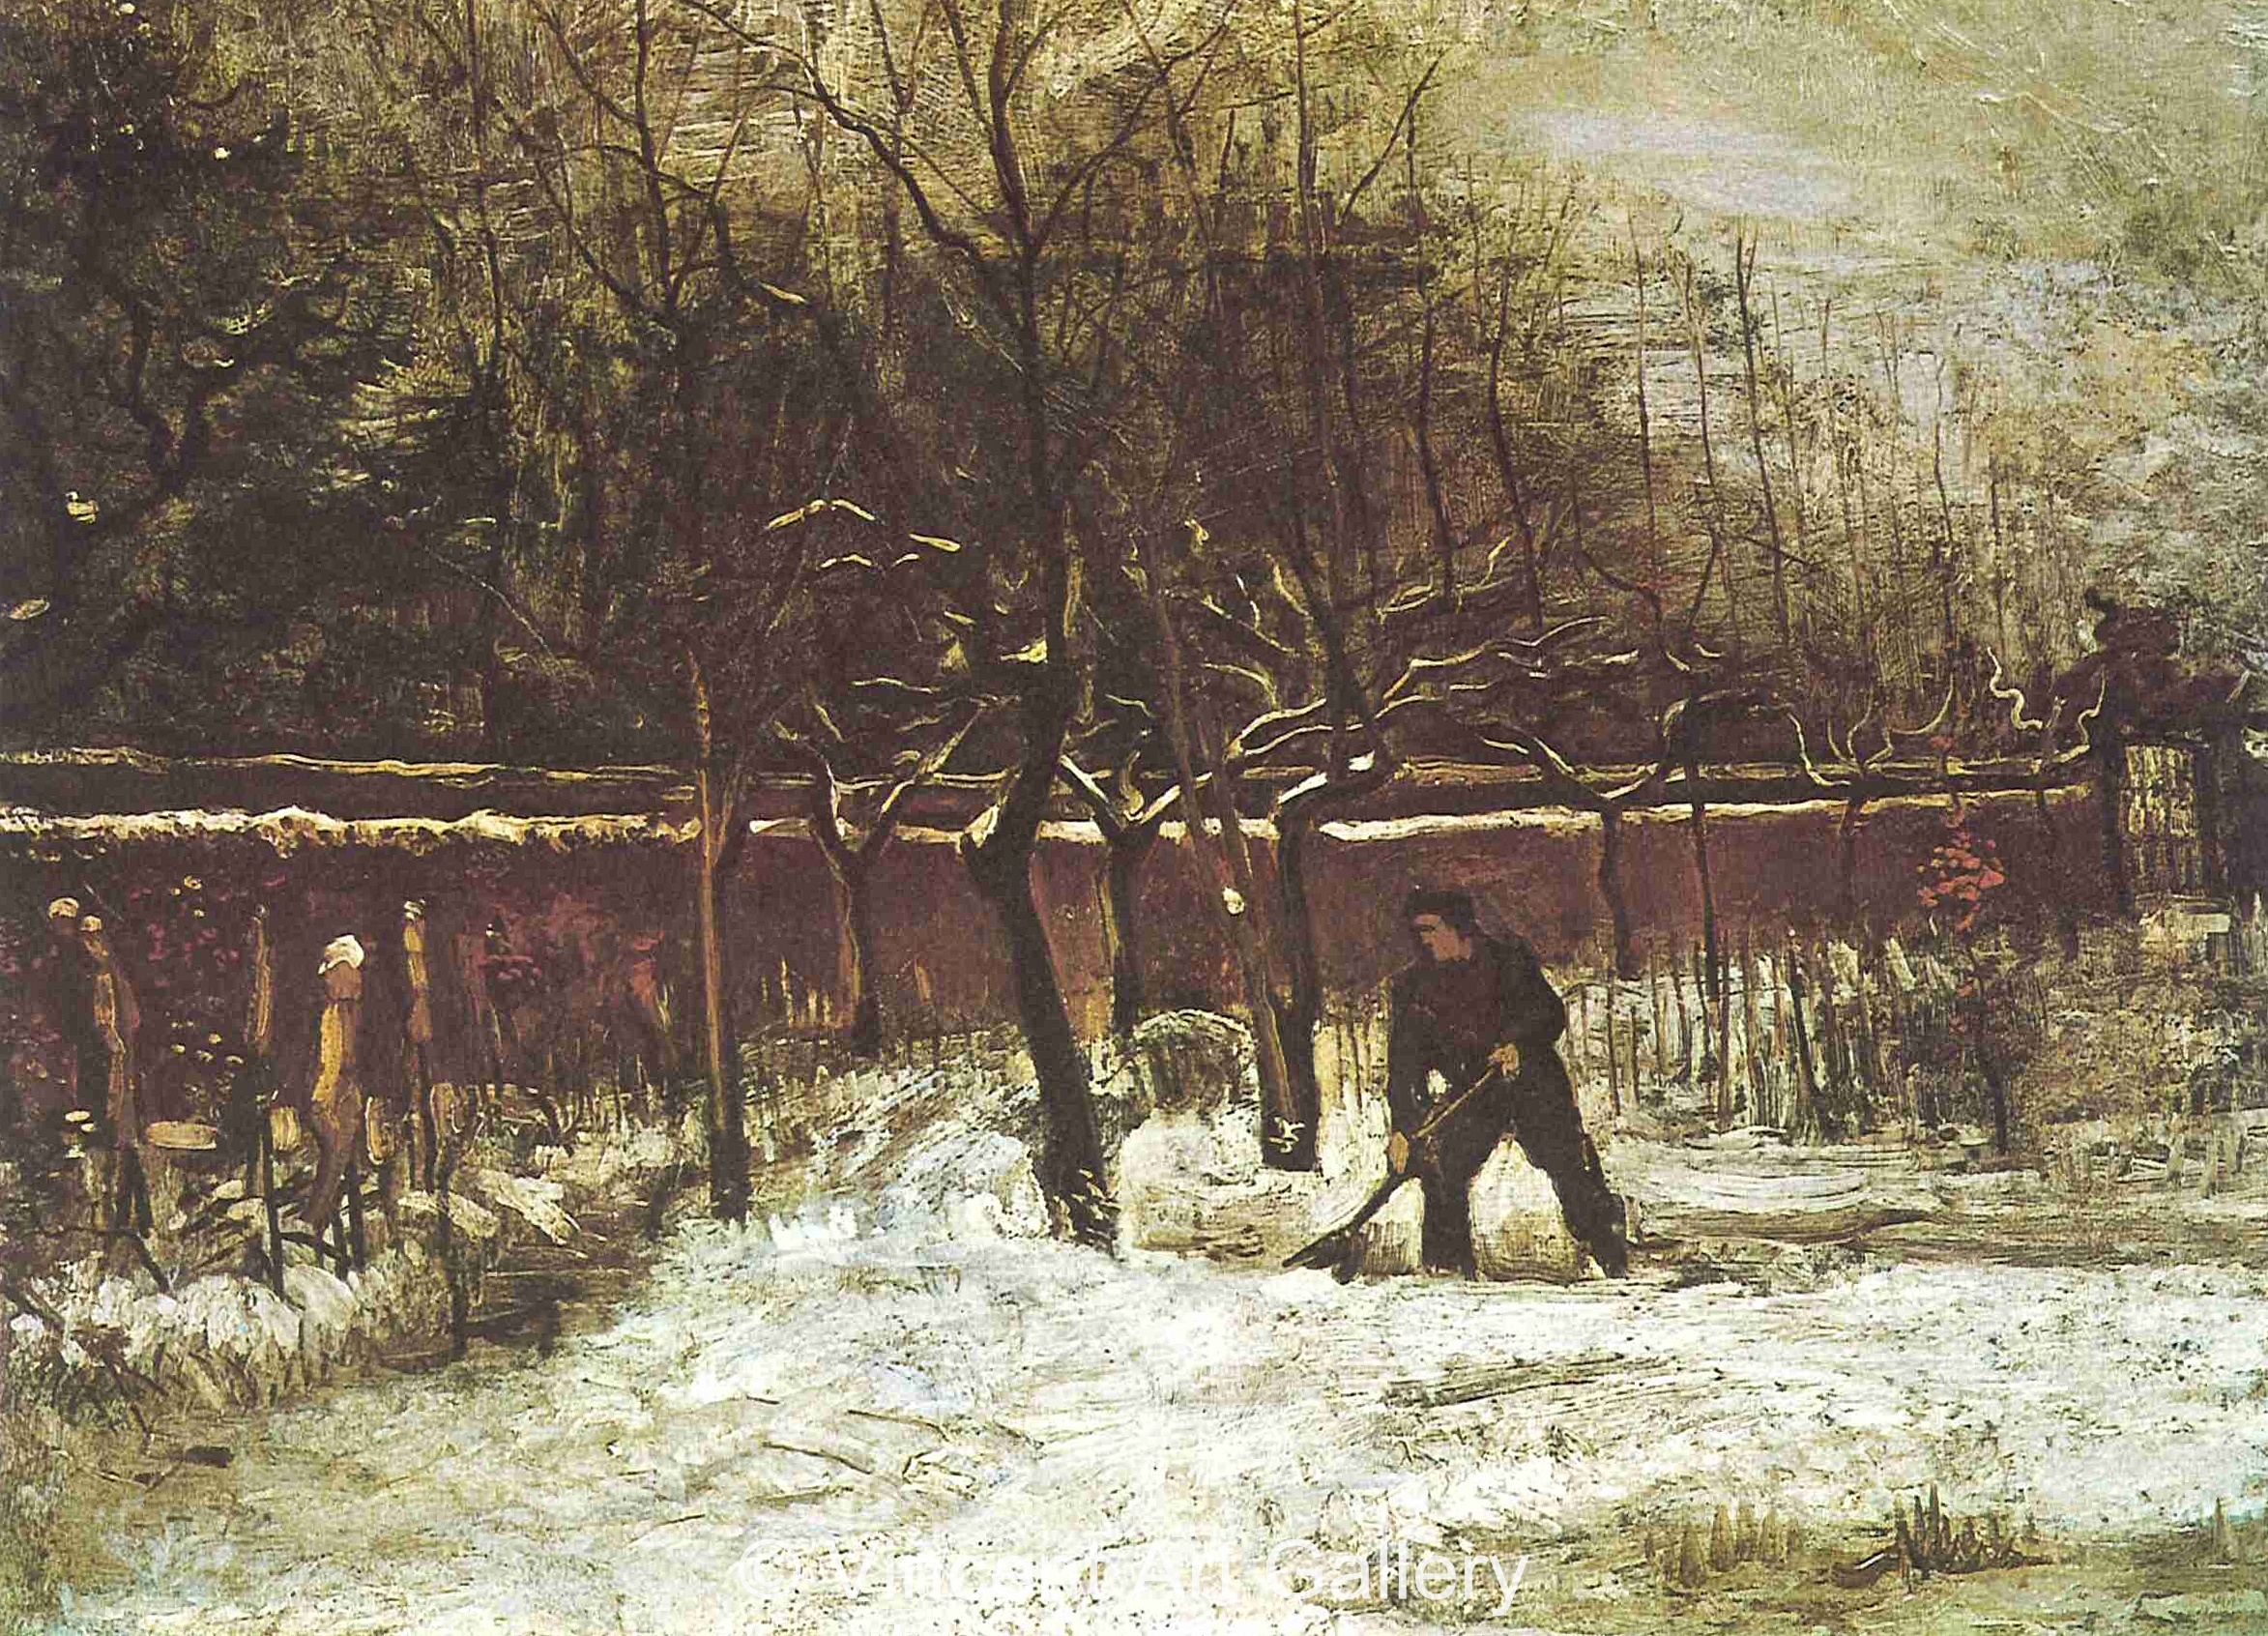 jh603 - The Parsonage Garden at Nuenen in the Snow - 300dpi